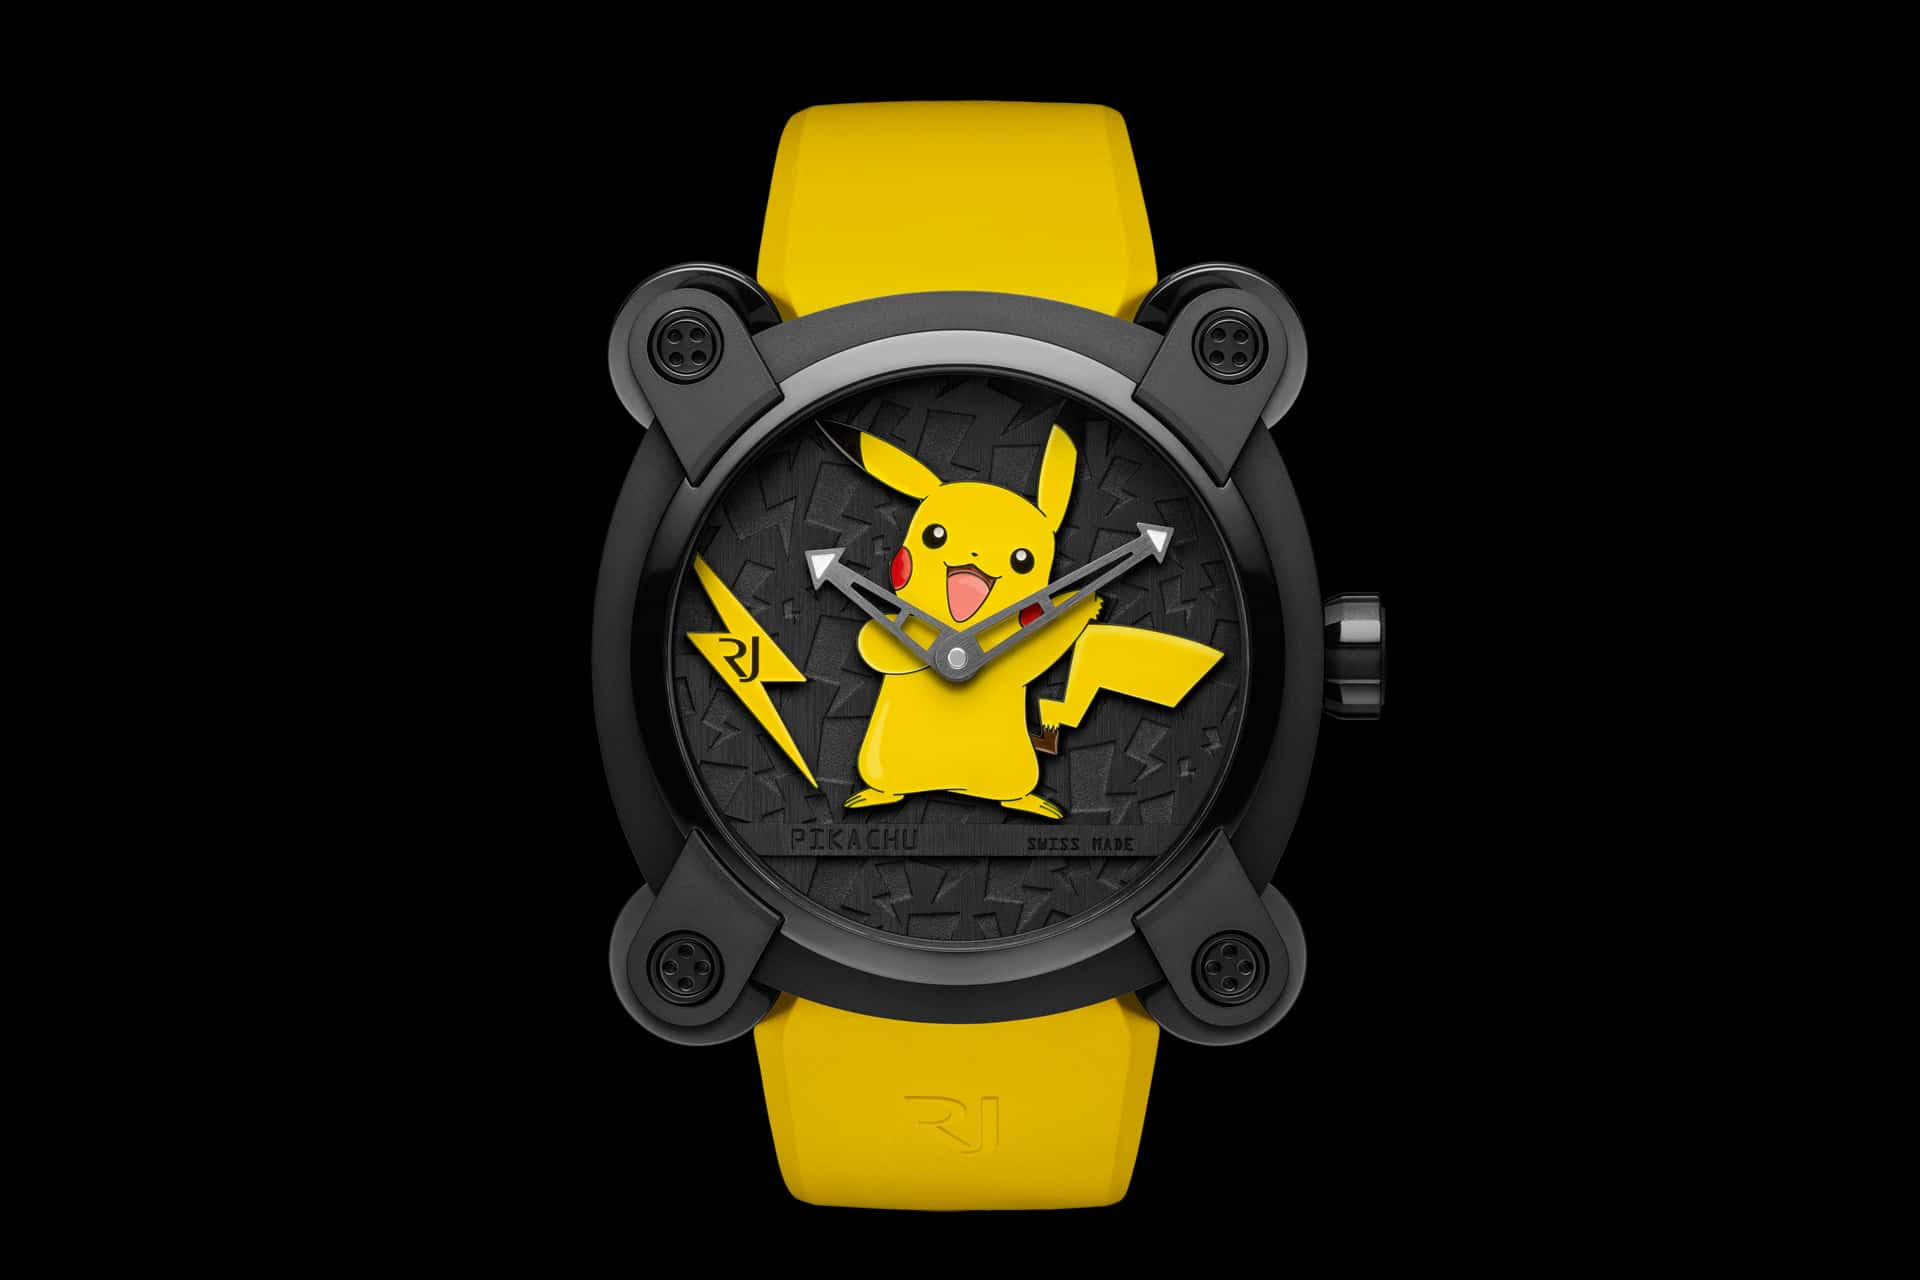 Romain Jerome X Pokémon Watch: Diese Pikachu-Armbanduhr kostet 20.000 US-Dollar!